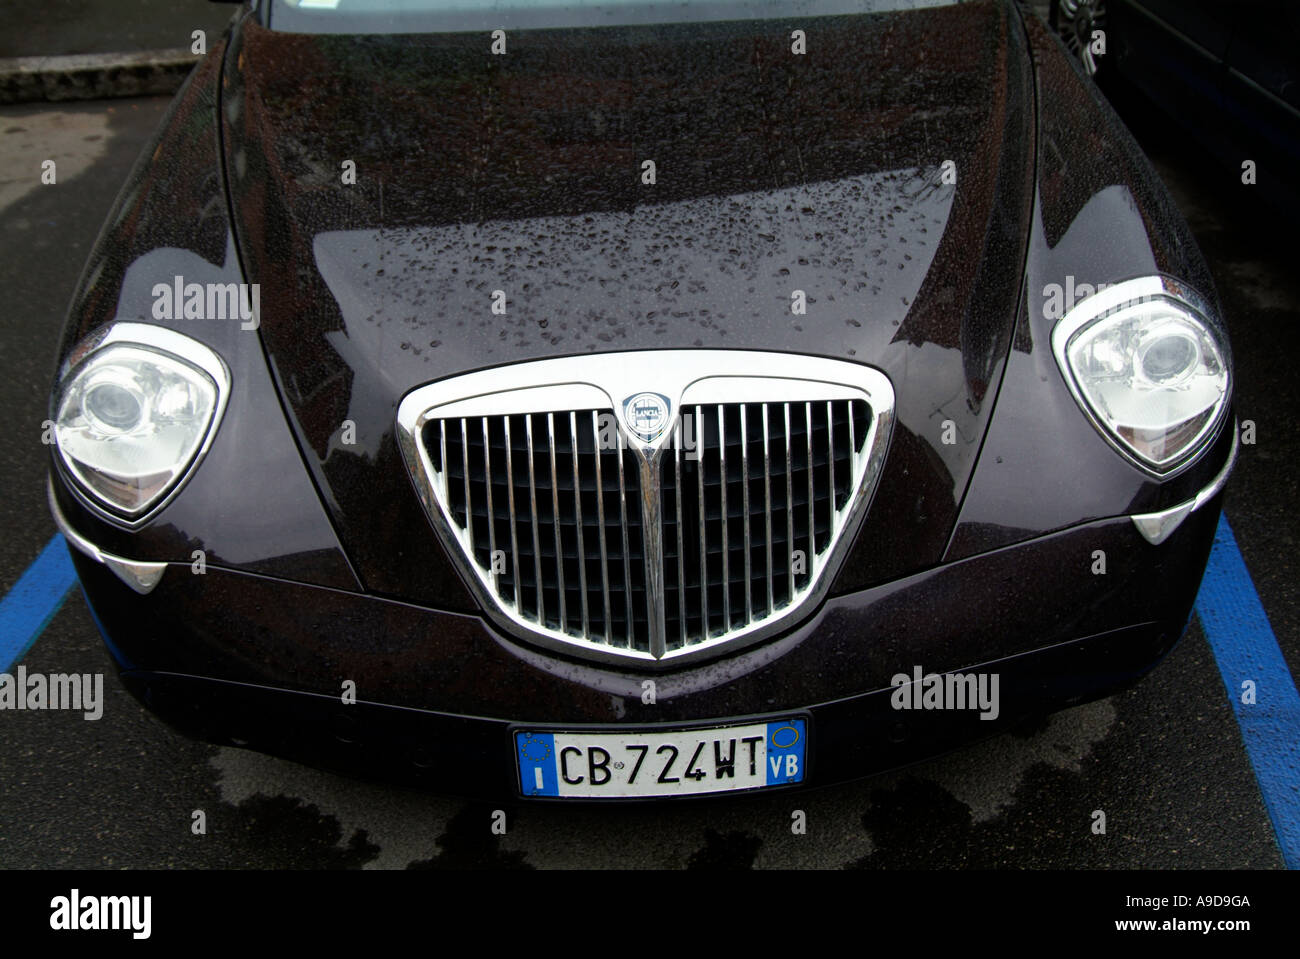 lancia, thesis, saloon, car, Italian, car, maker, Italy, unusual, styling, manufacturer, - Stock Image